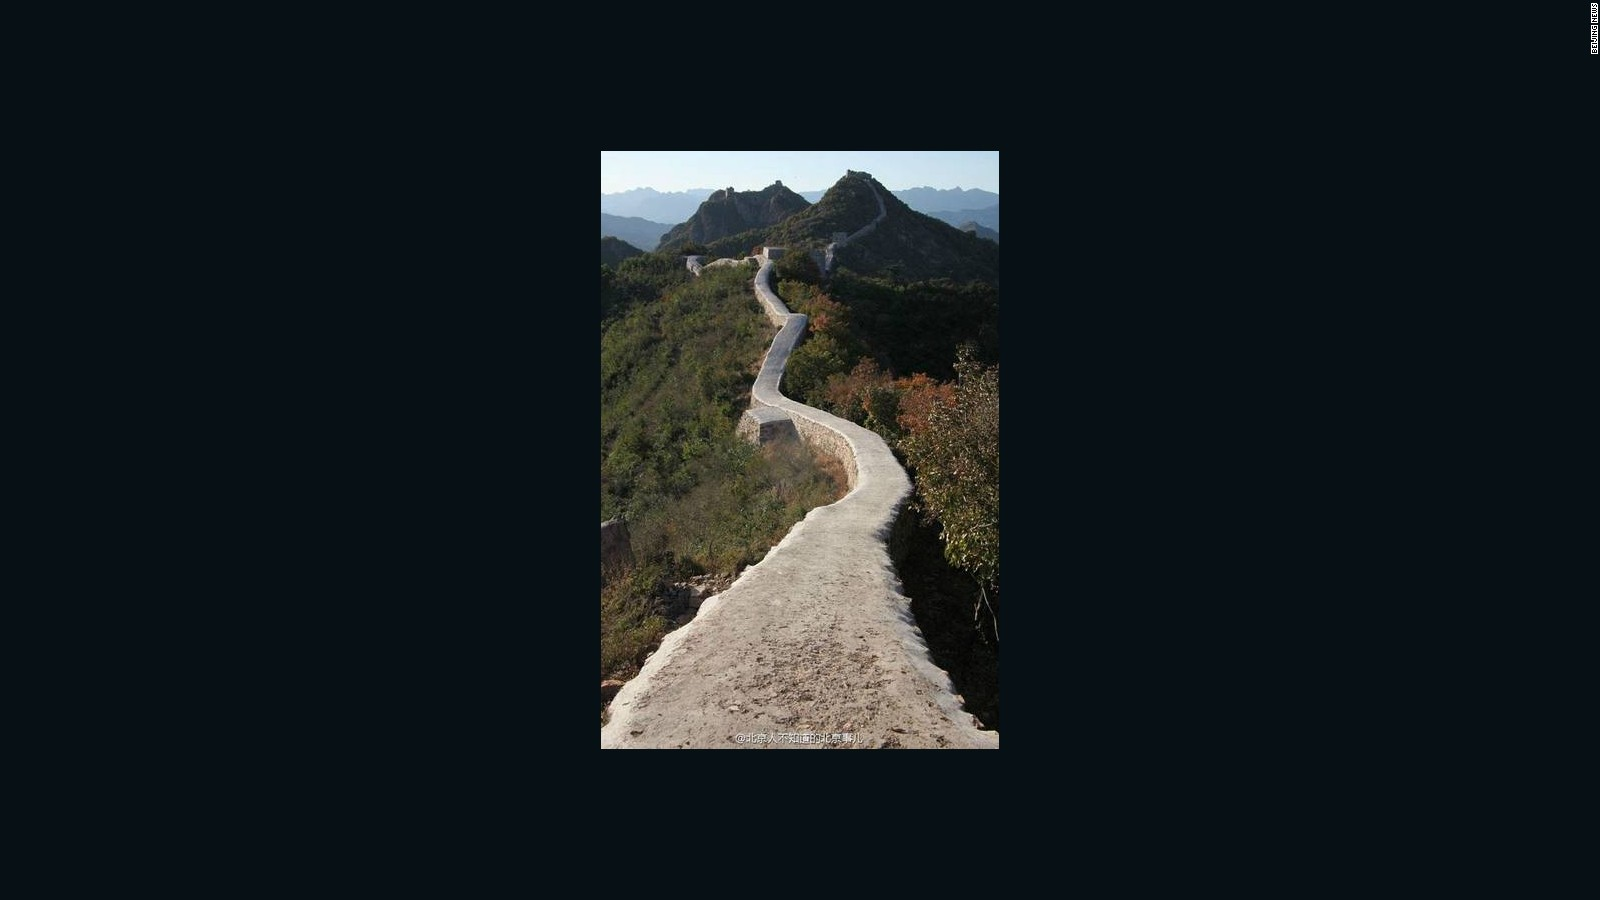 Chinas Great Wall covered in cement CNN Travel 1600x900